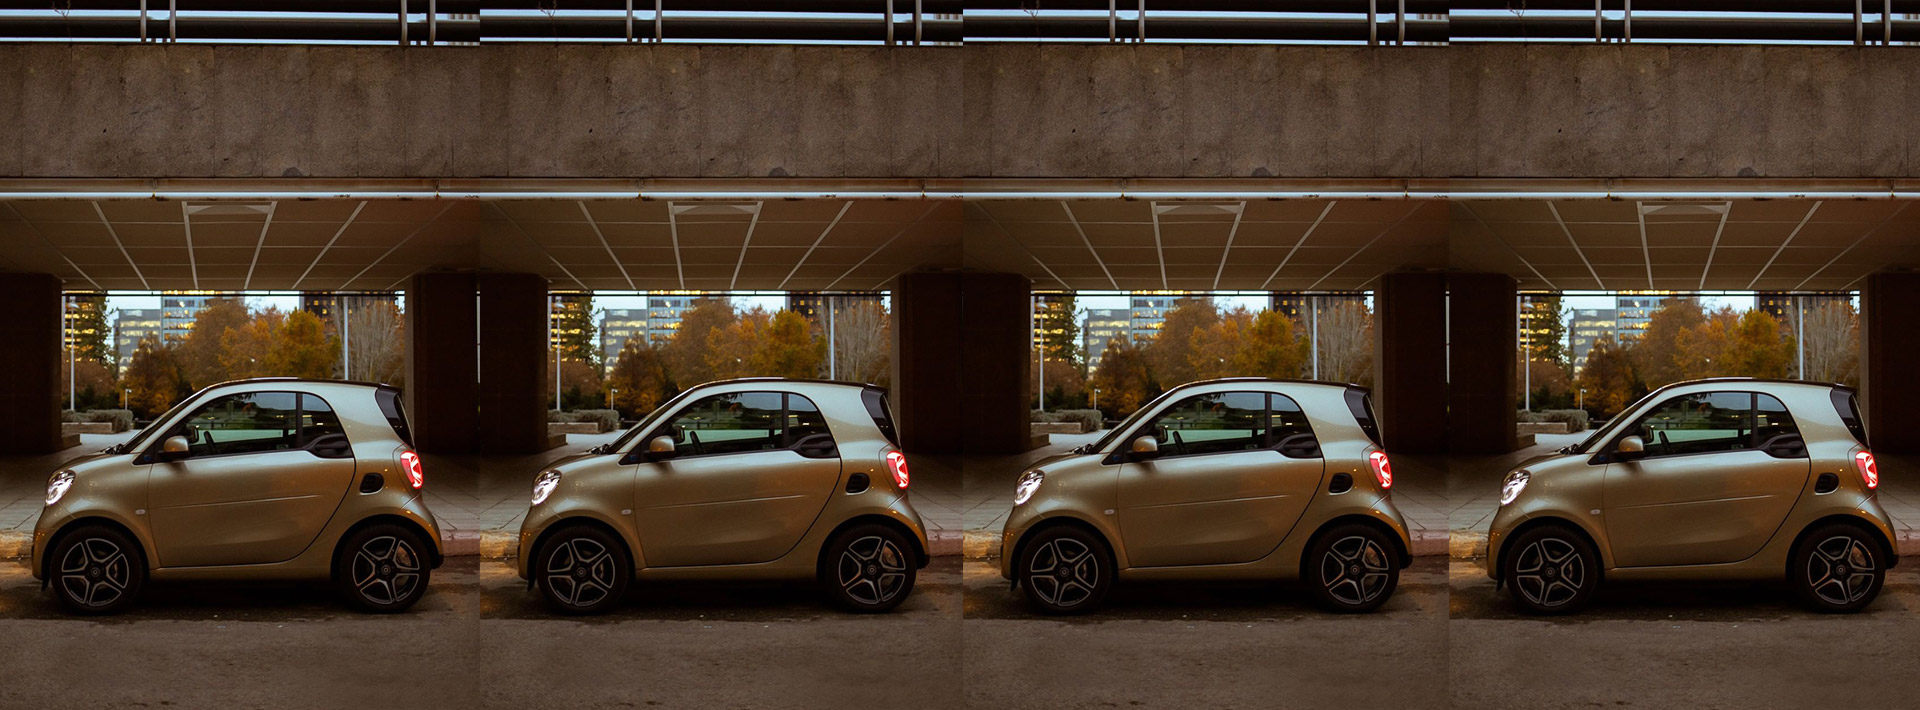 The new ForTwo keeps the incredible design plus new colors and still amazingly sustainable for a better life in the city.